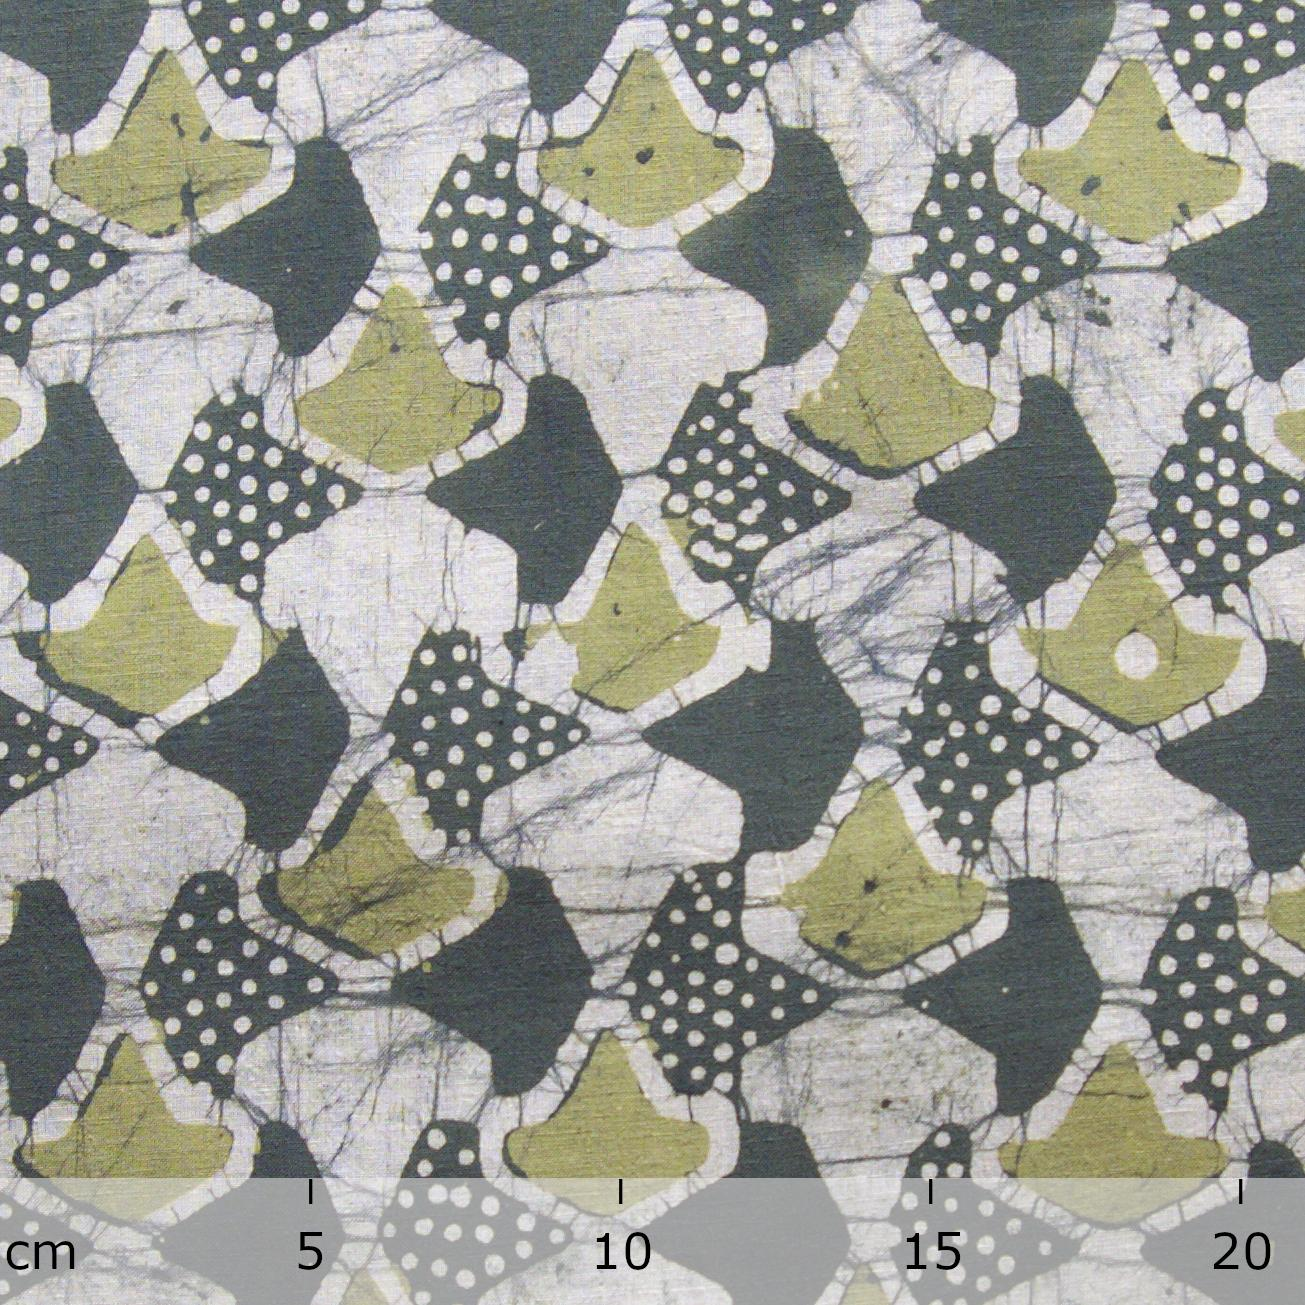 4 - SHA26 - 100% Block-Printed Batik Cotton Fabric From India - Sea Sponge Motif - Ruler